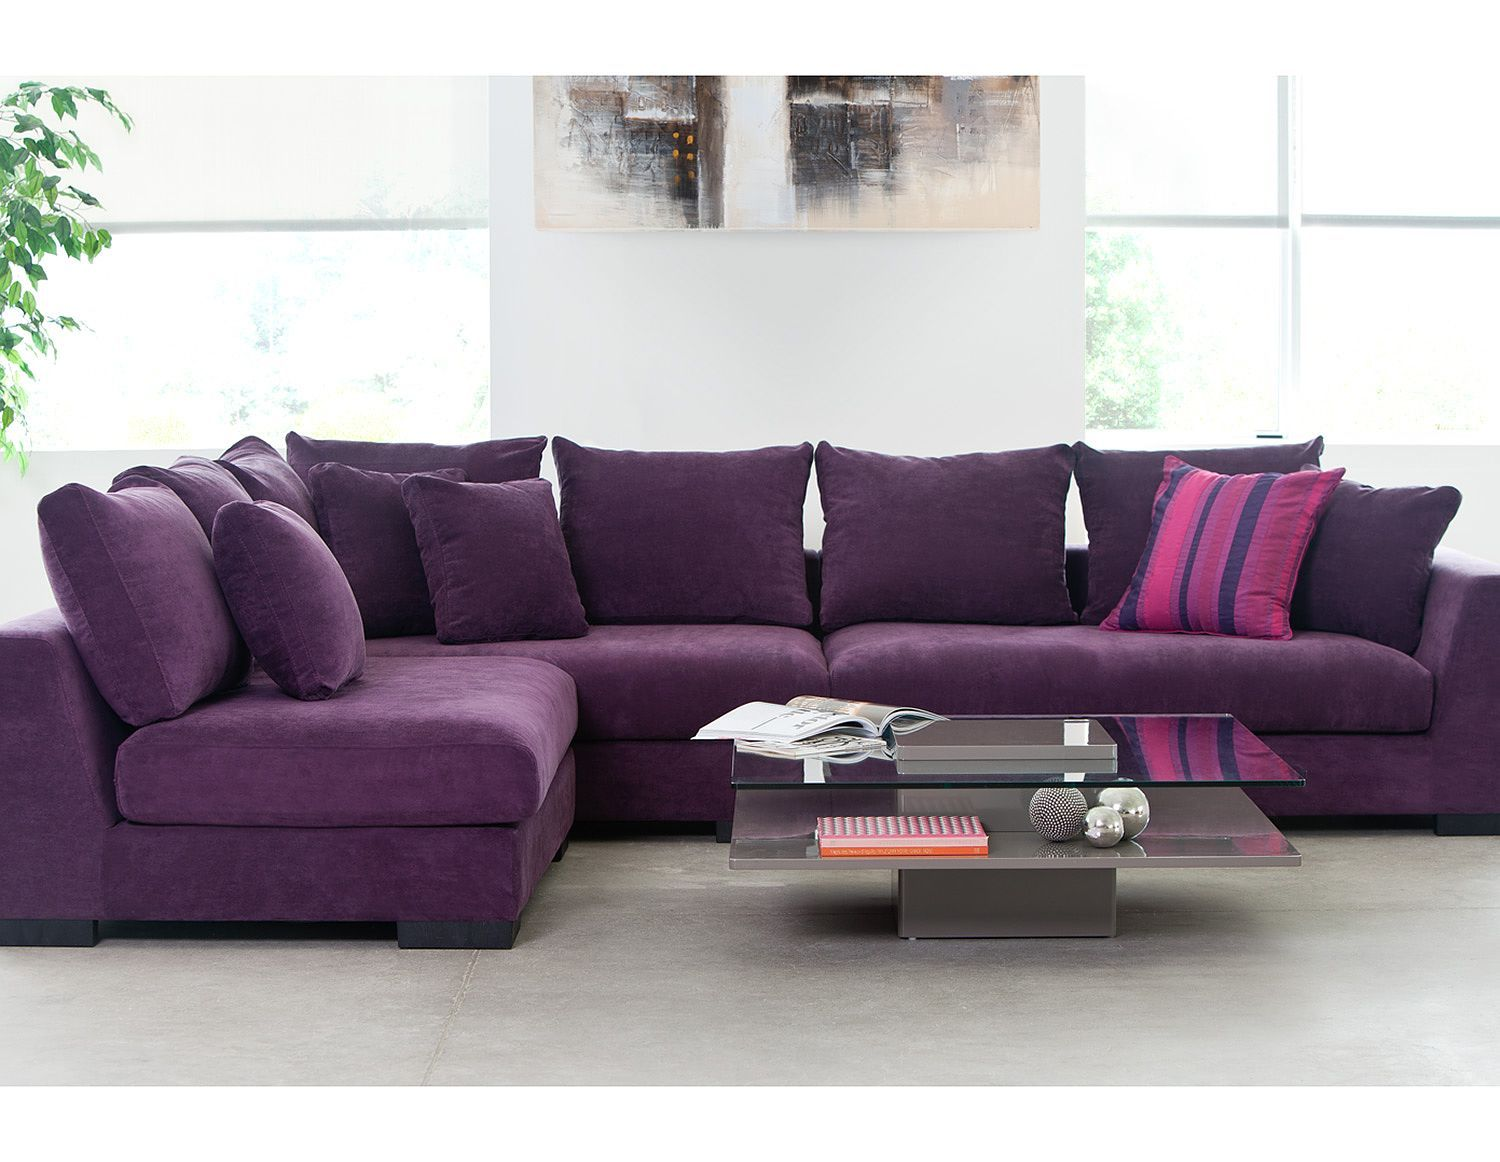 Living Room Sectional Sofas Cooper Purple Faints A couch